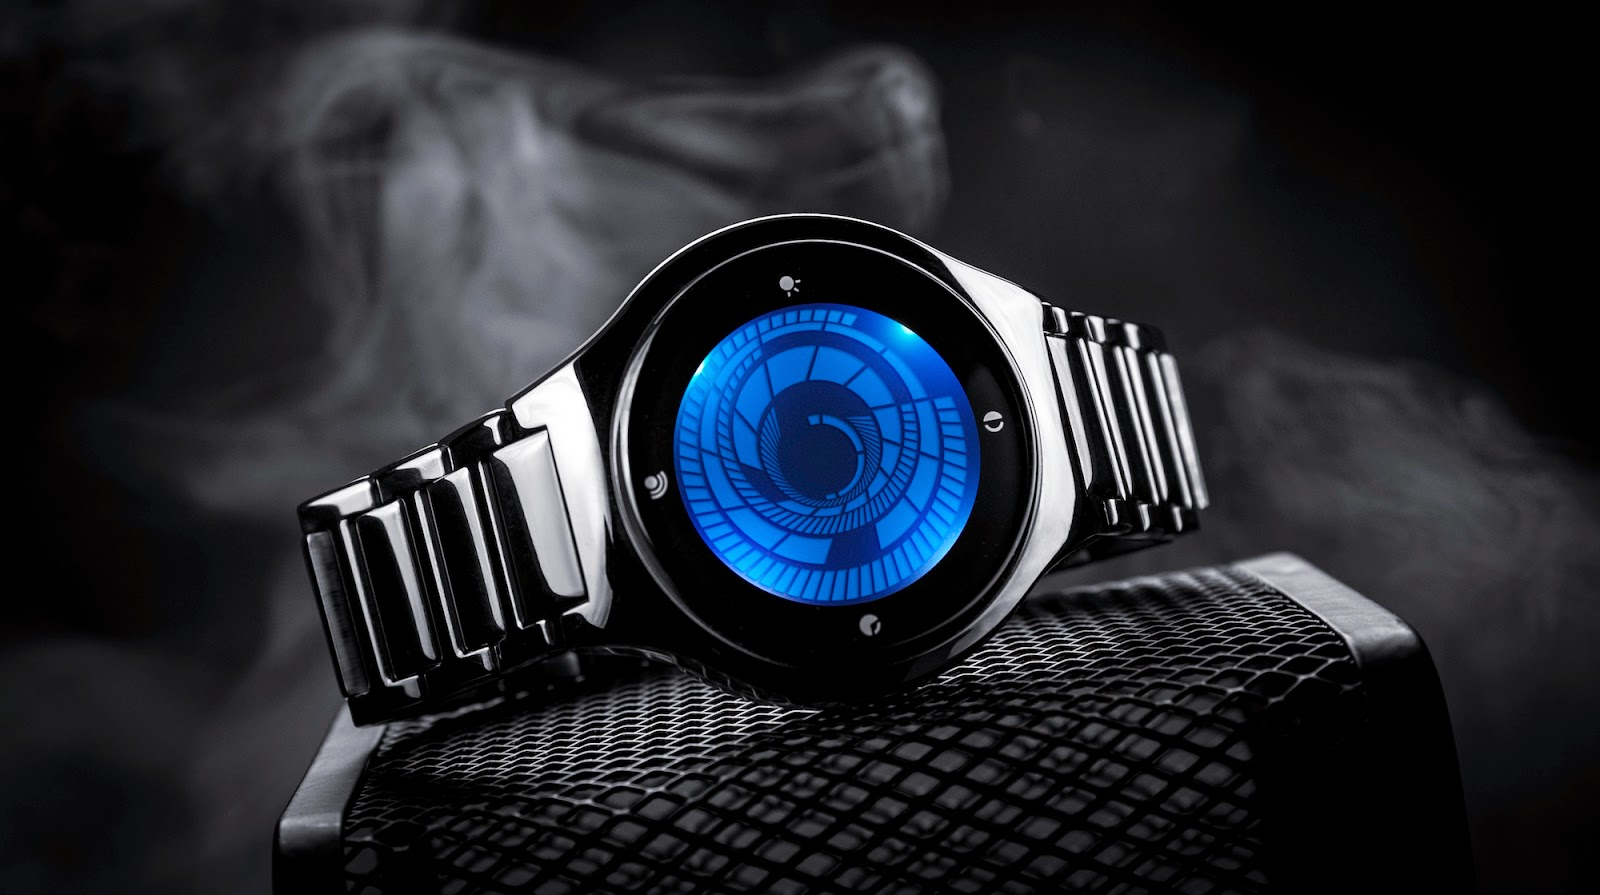 Kisai Vortex watch